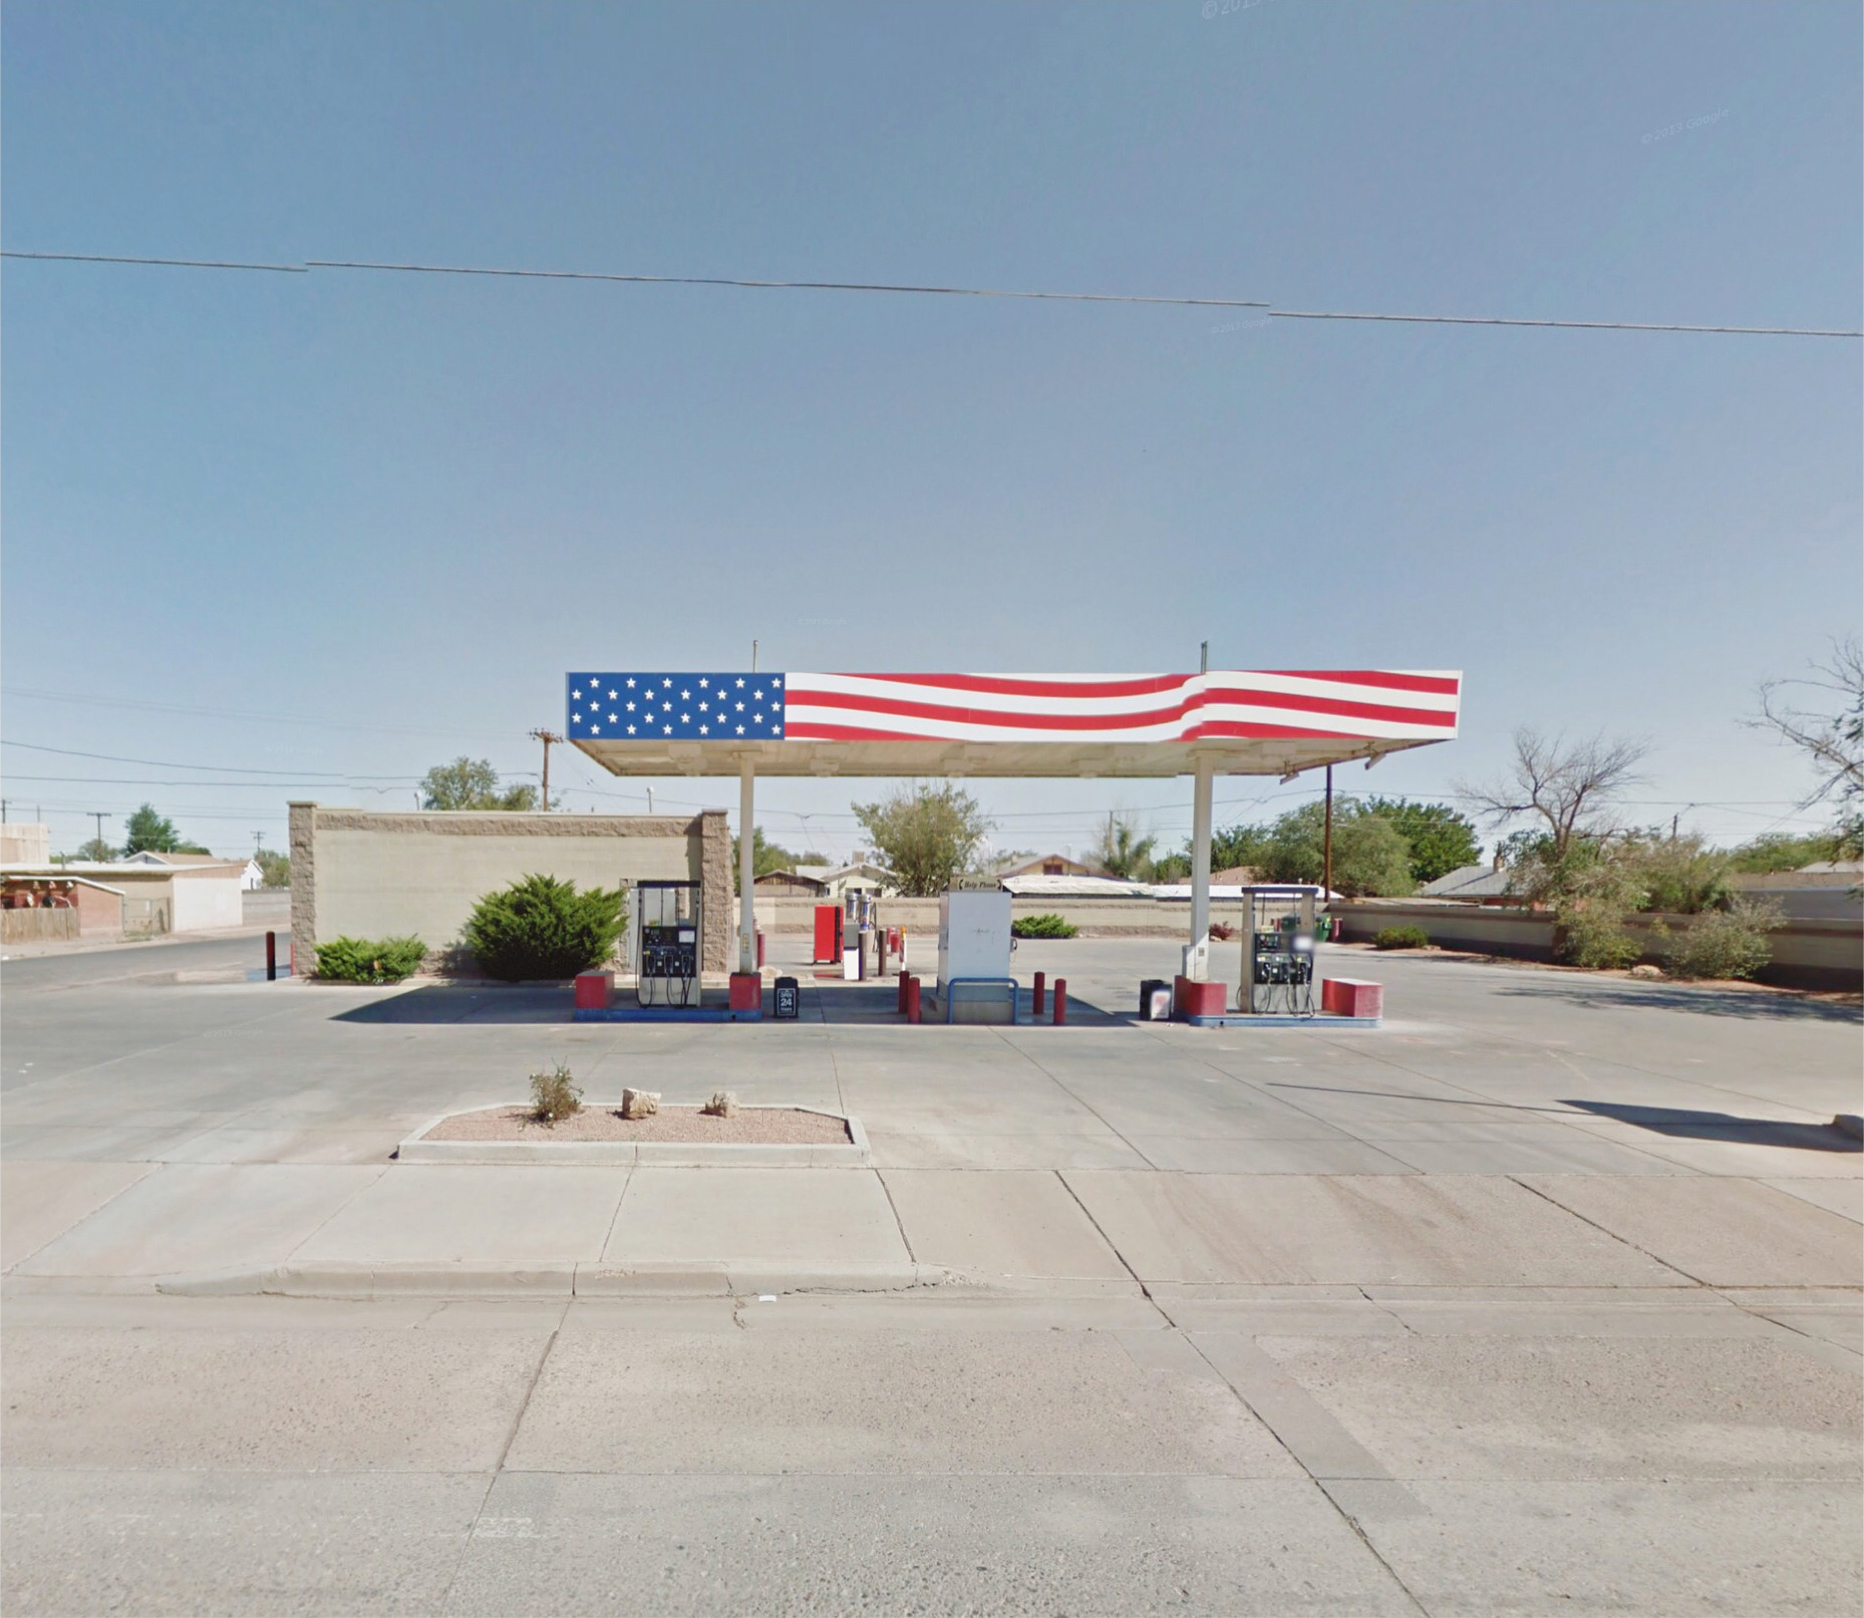 14_Gas-Station_USA.jpg